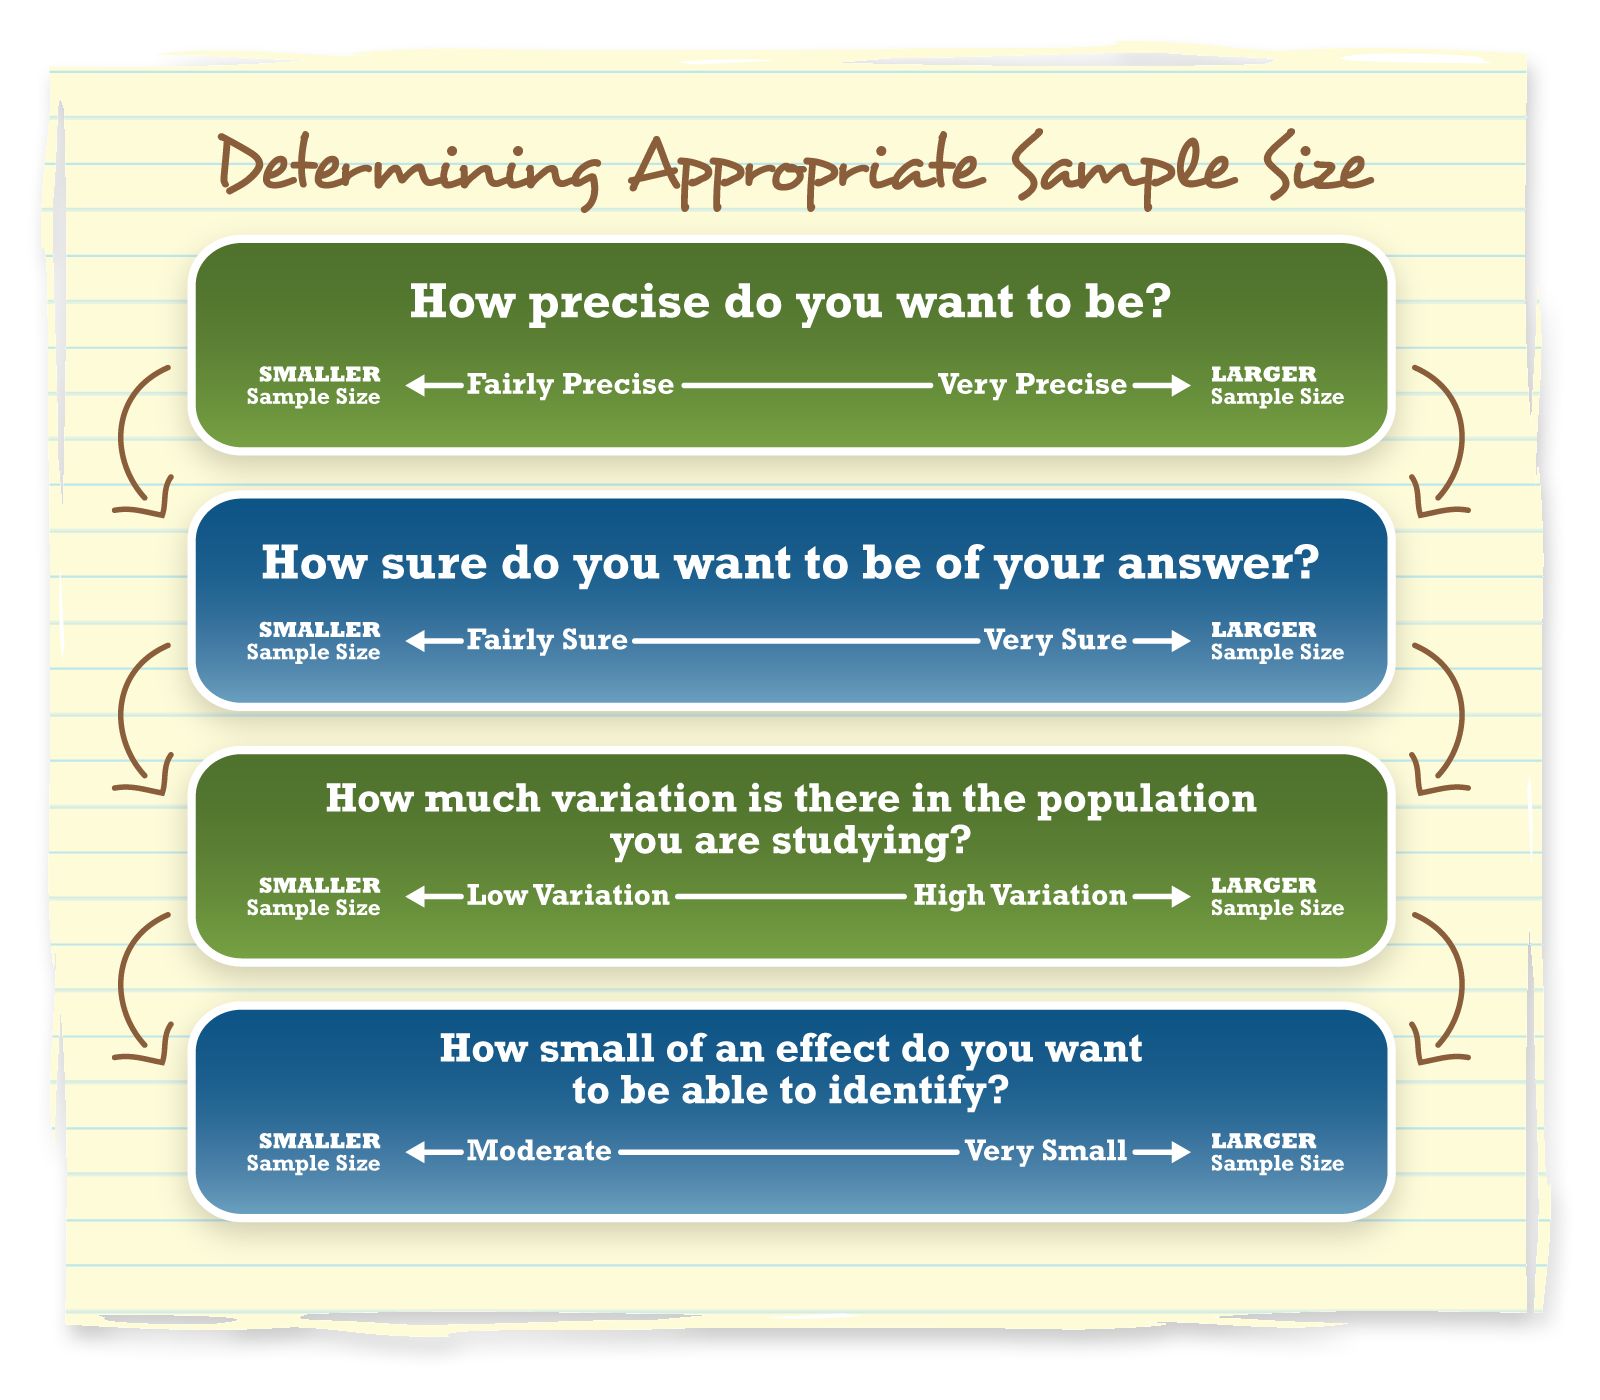 Chart showing how to determine appropriate sample size